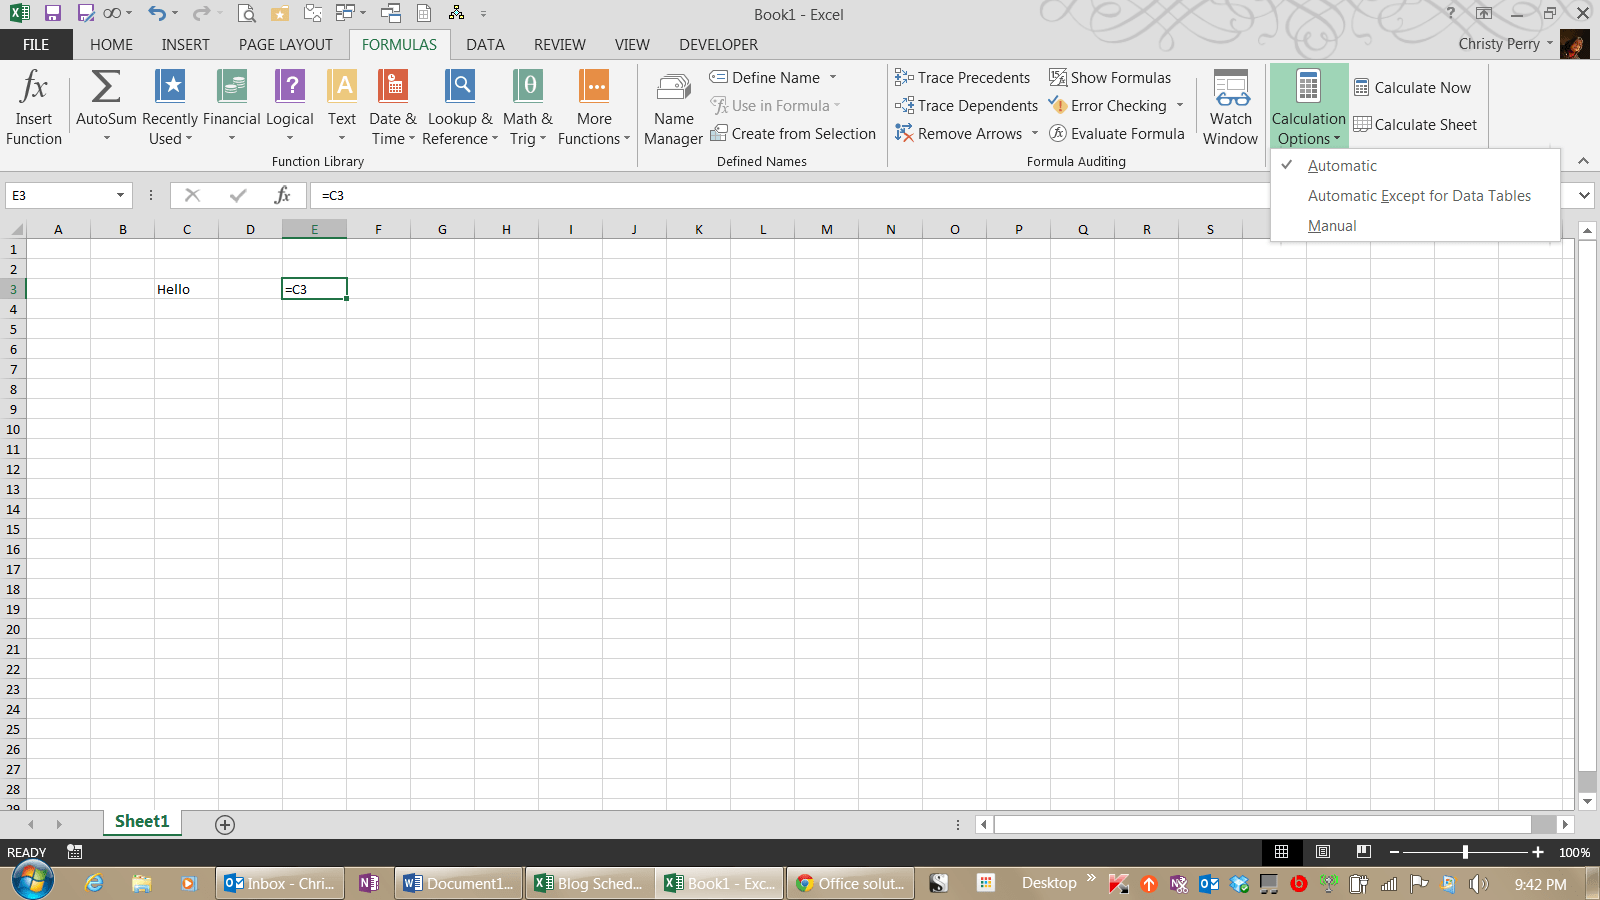 Excel Not Showing Formula Result On Sheet But F9 Shows Correct Value